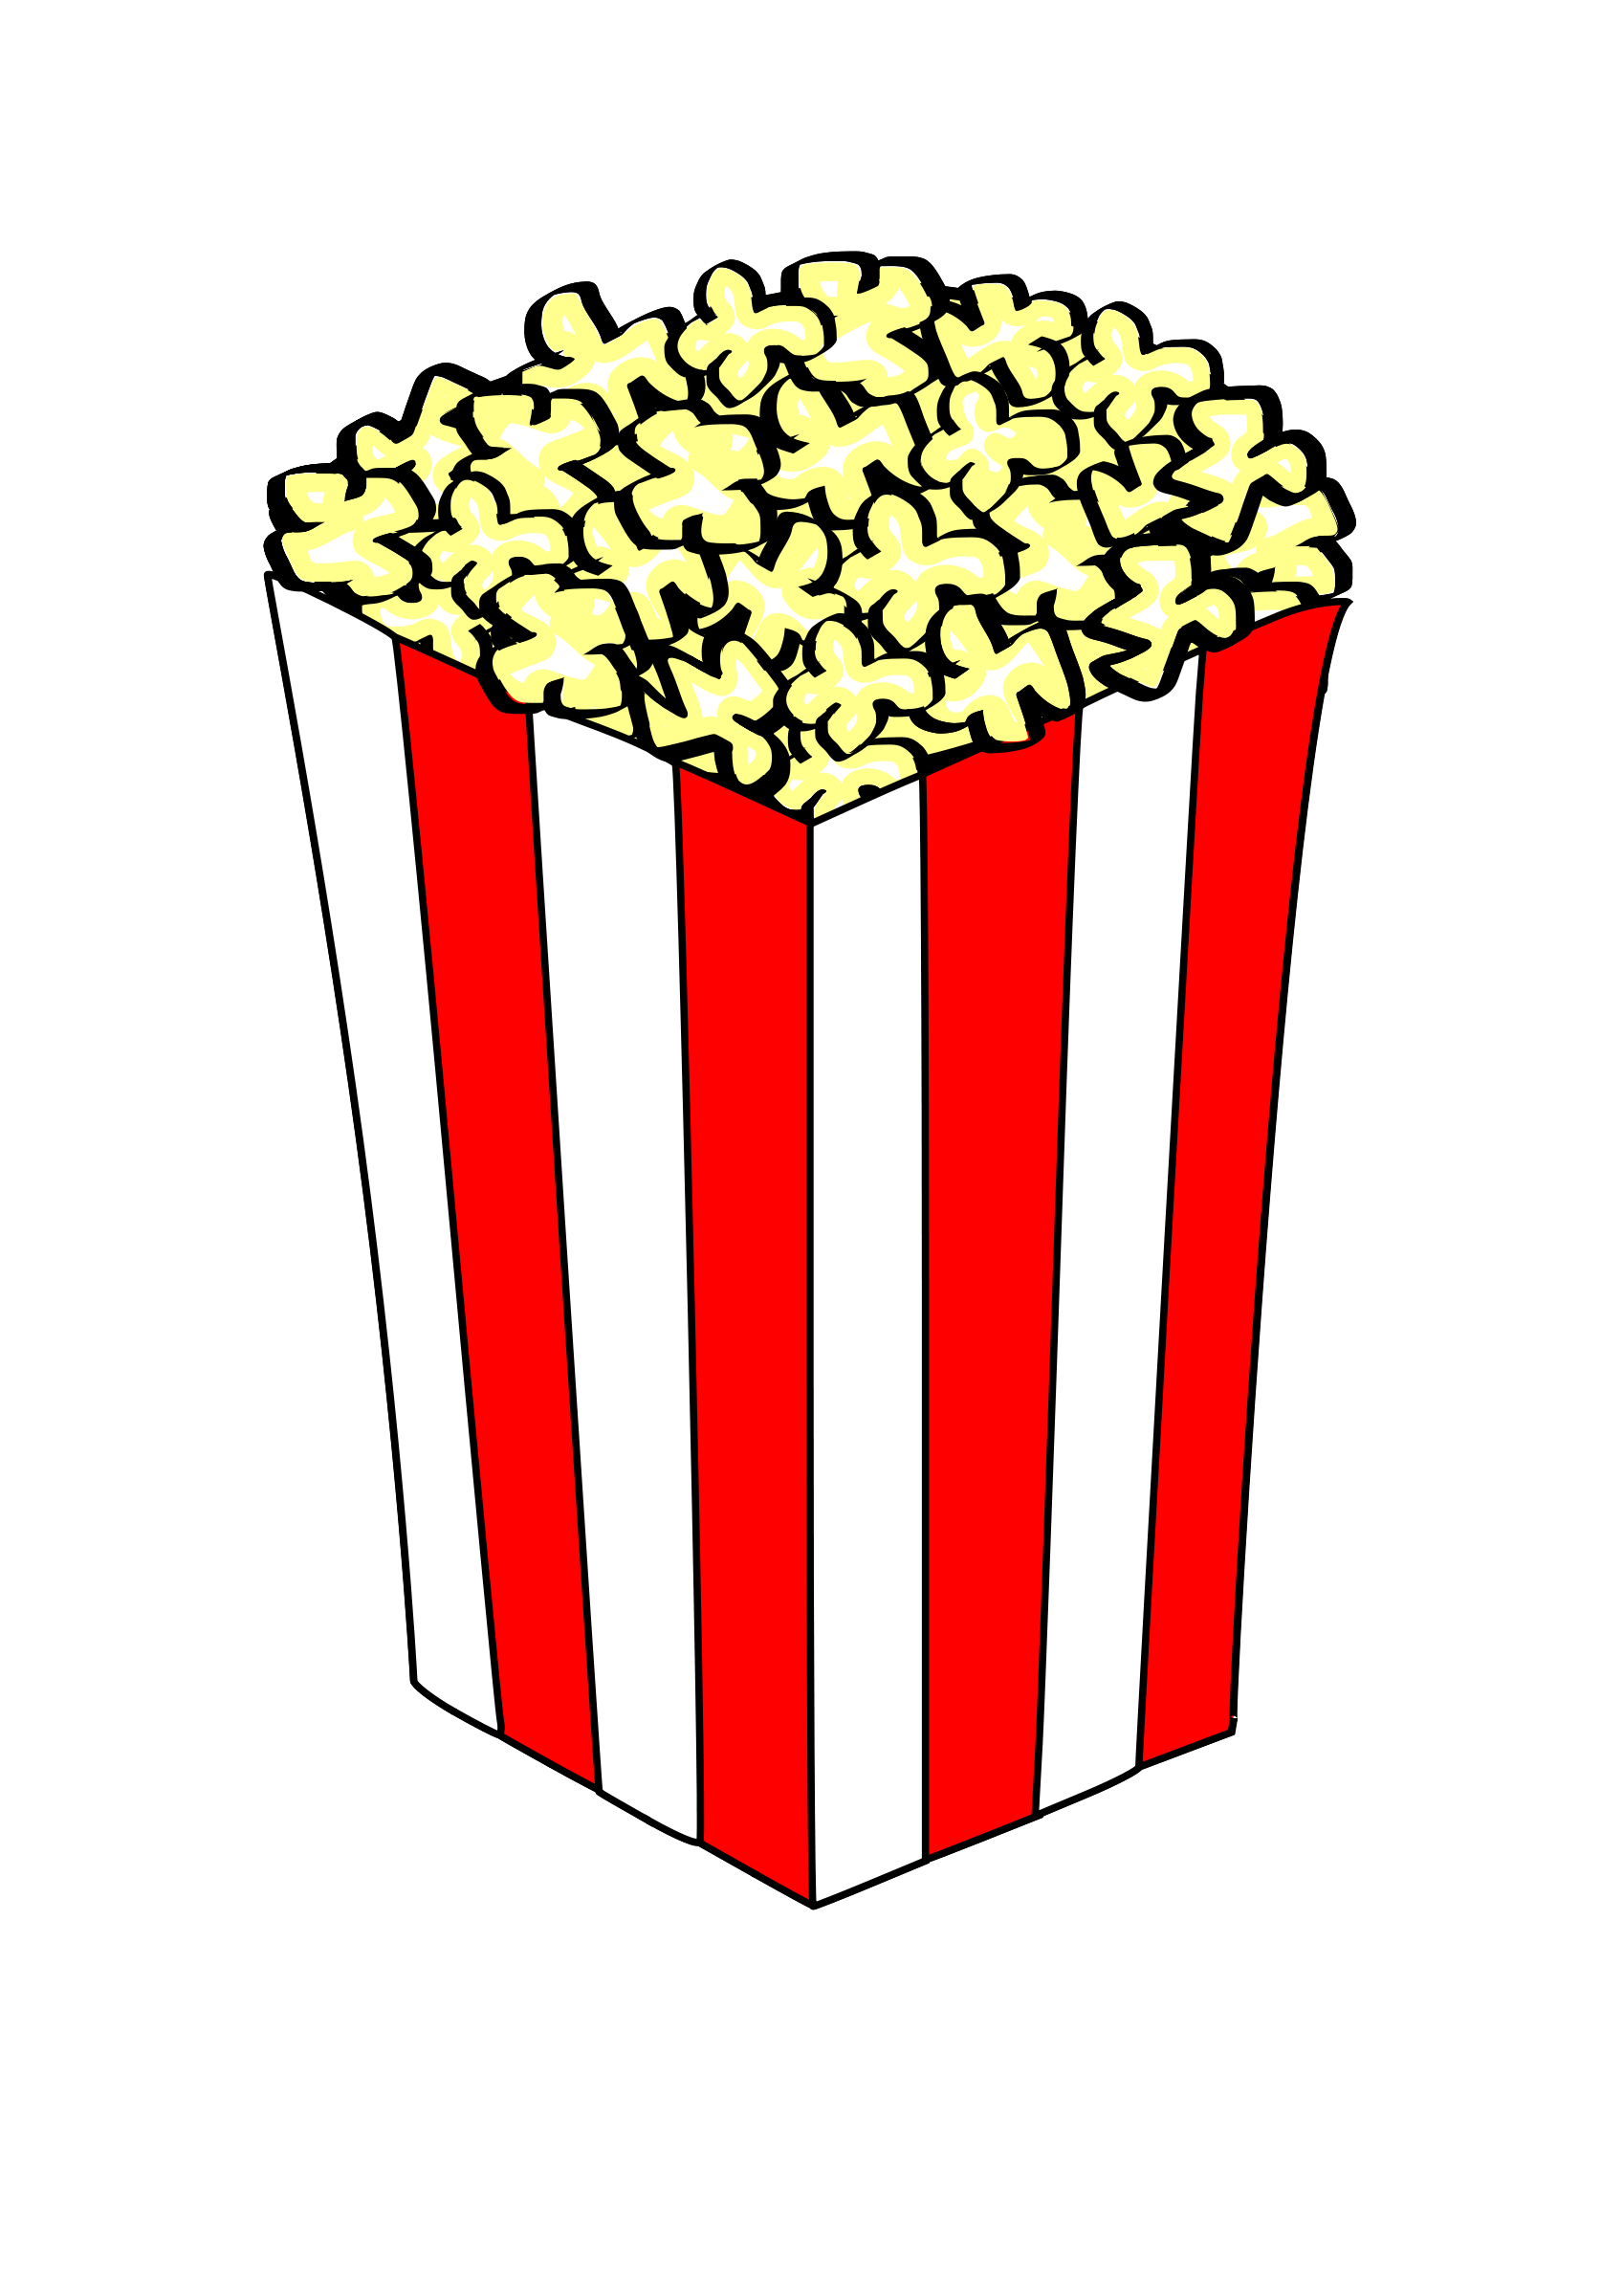 Movie theater popcorn clipart clipart images gallery for ... jpg download